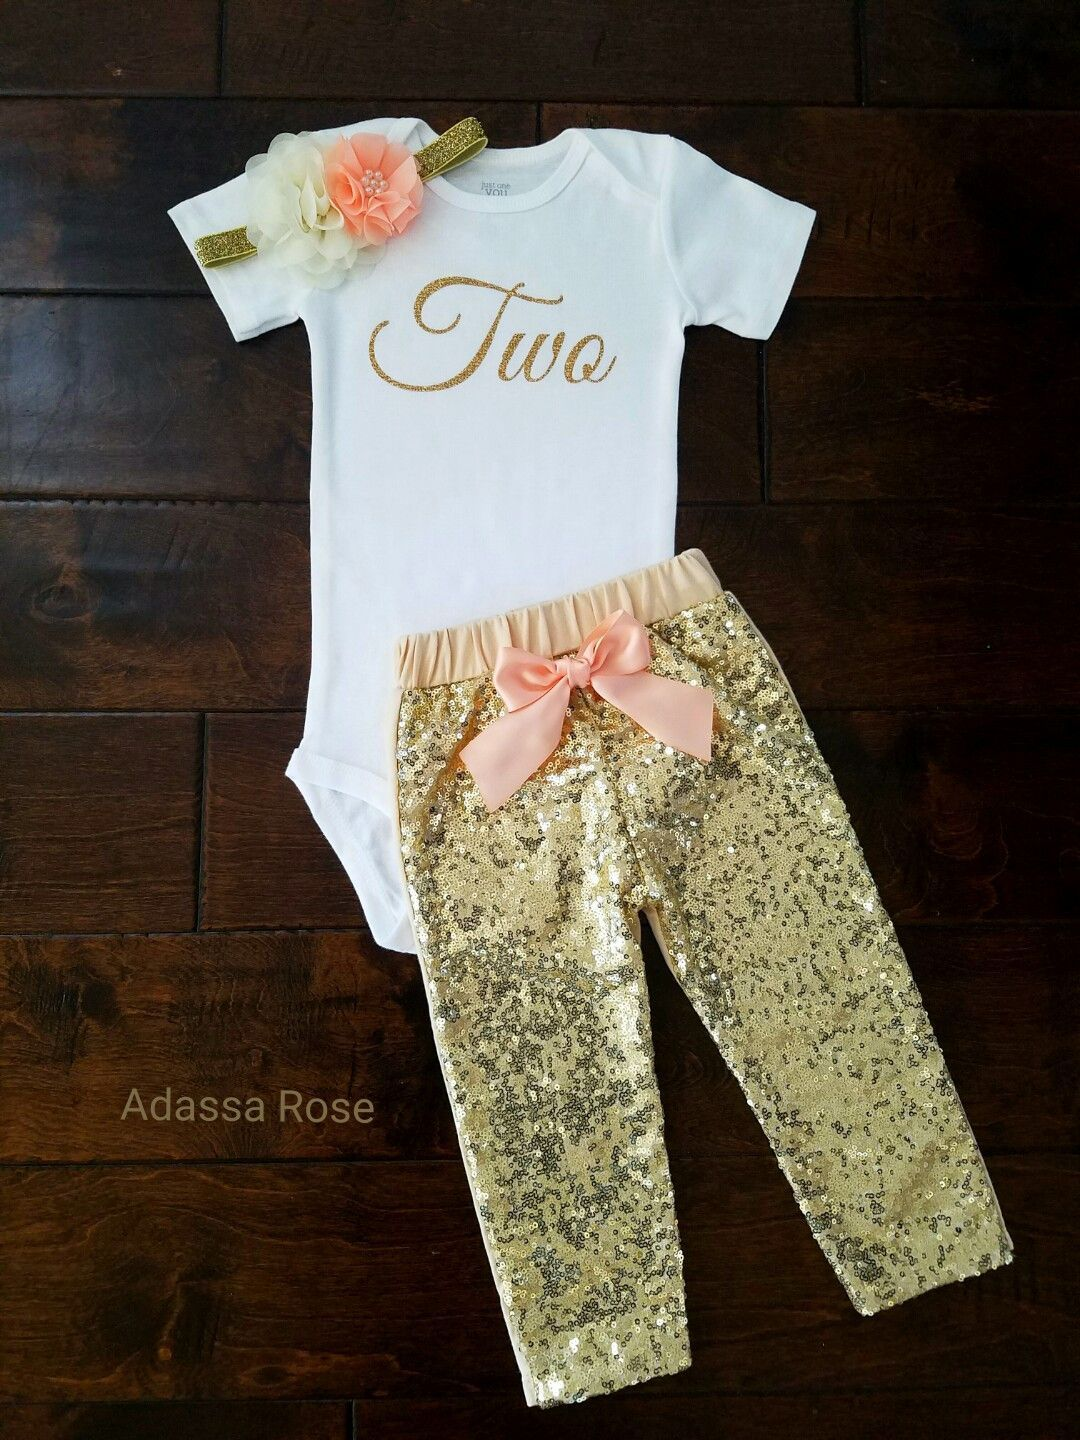 aa5727651 Show your little princess off in this oh so glam peach and gold second  birthday outfit. - Perfect for first birthday outfit or photo session.